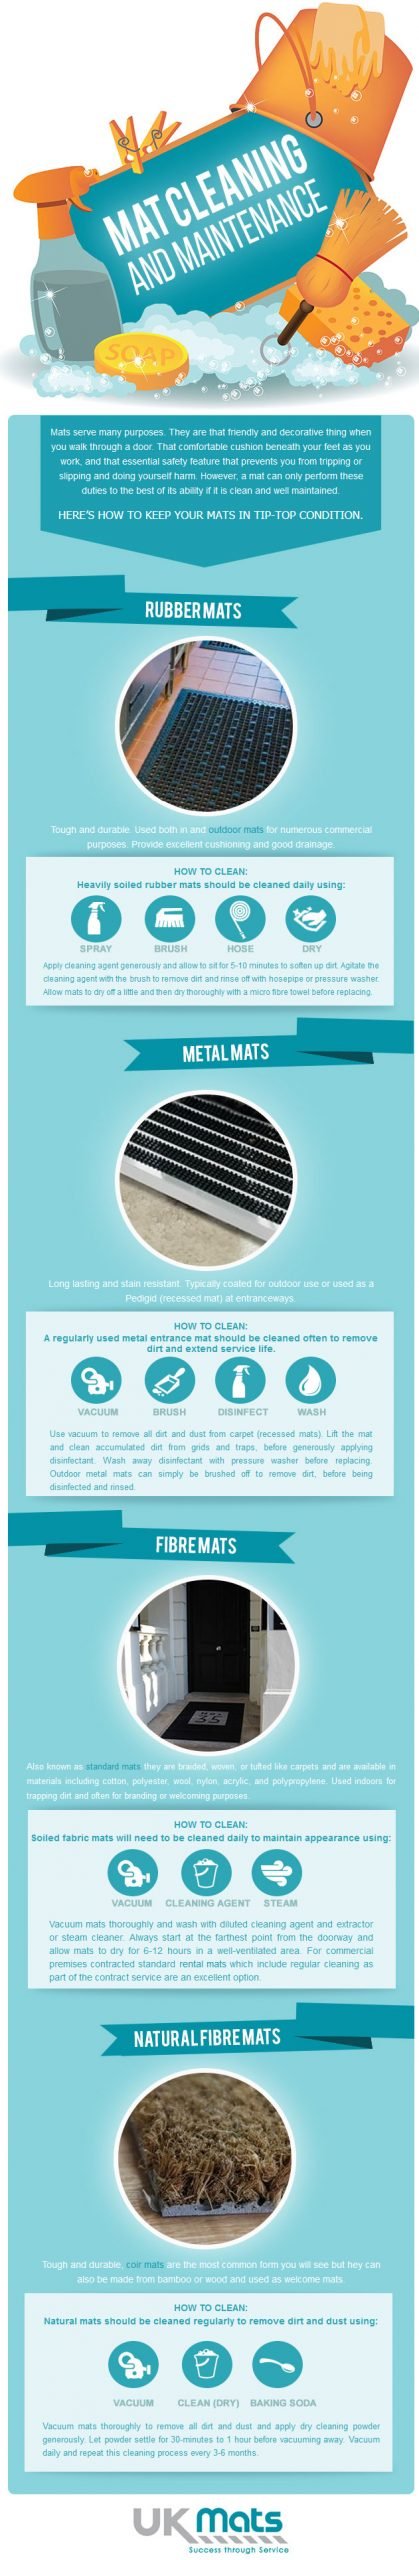 Mat Cleaning and Maintenance infographic